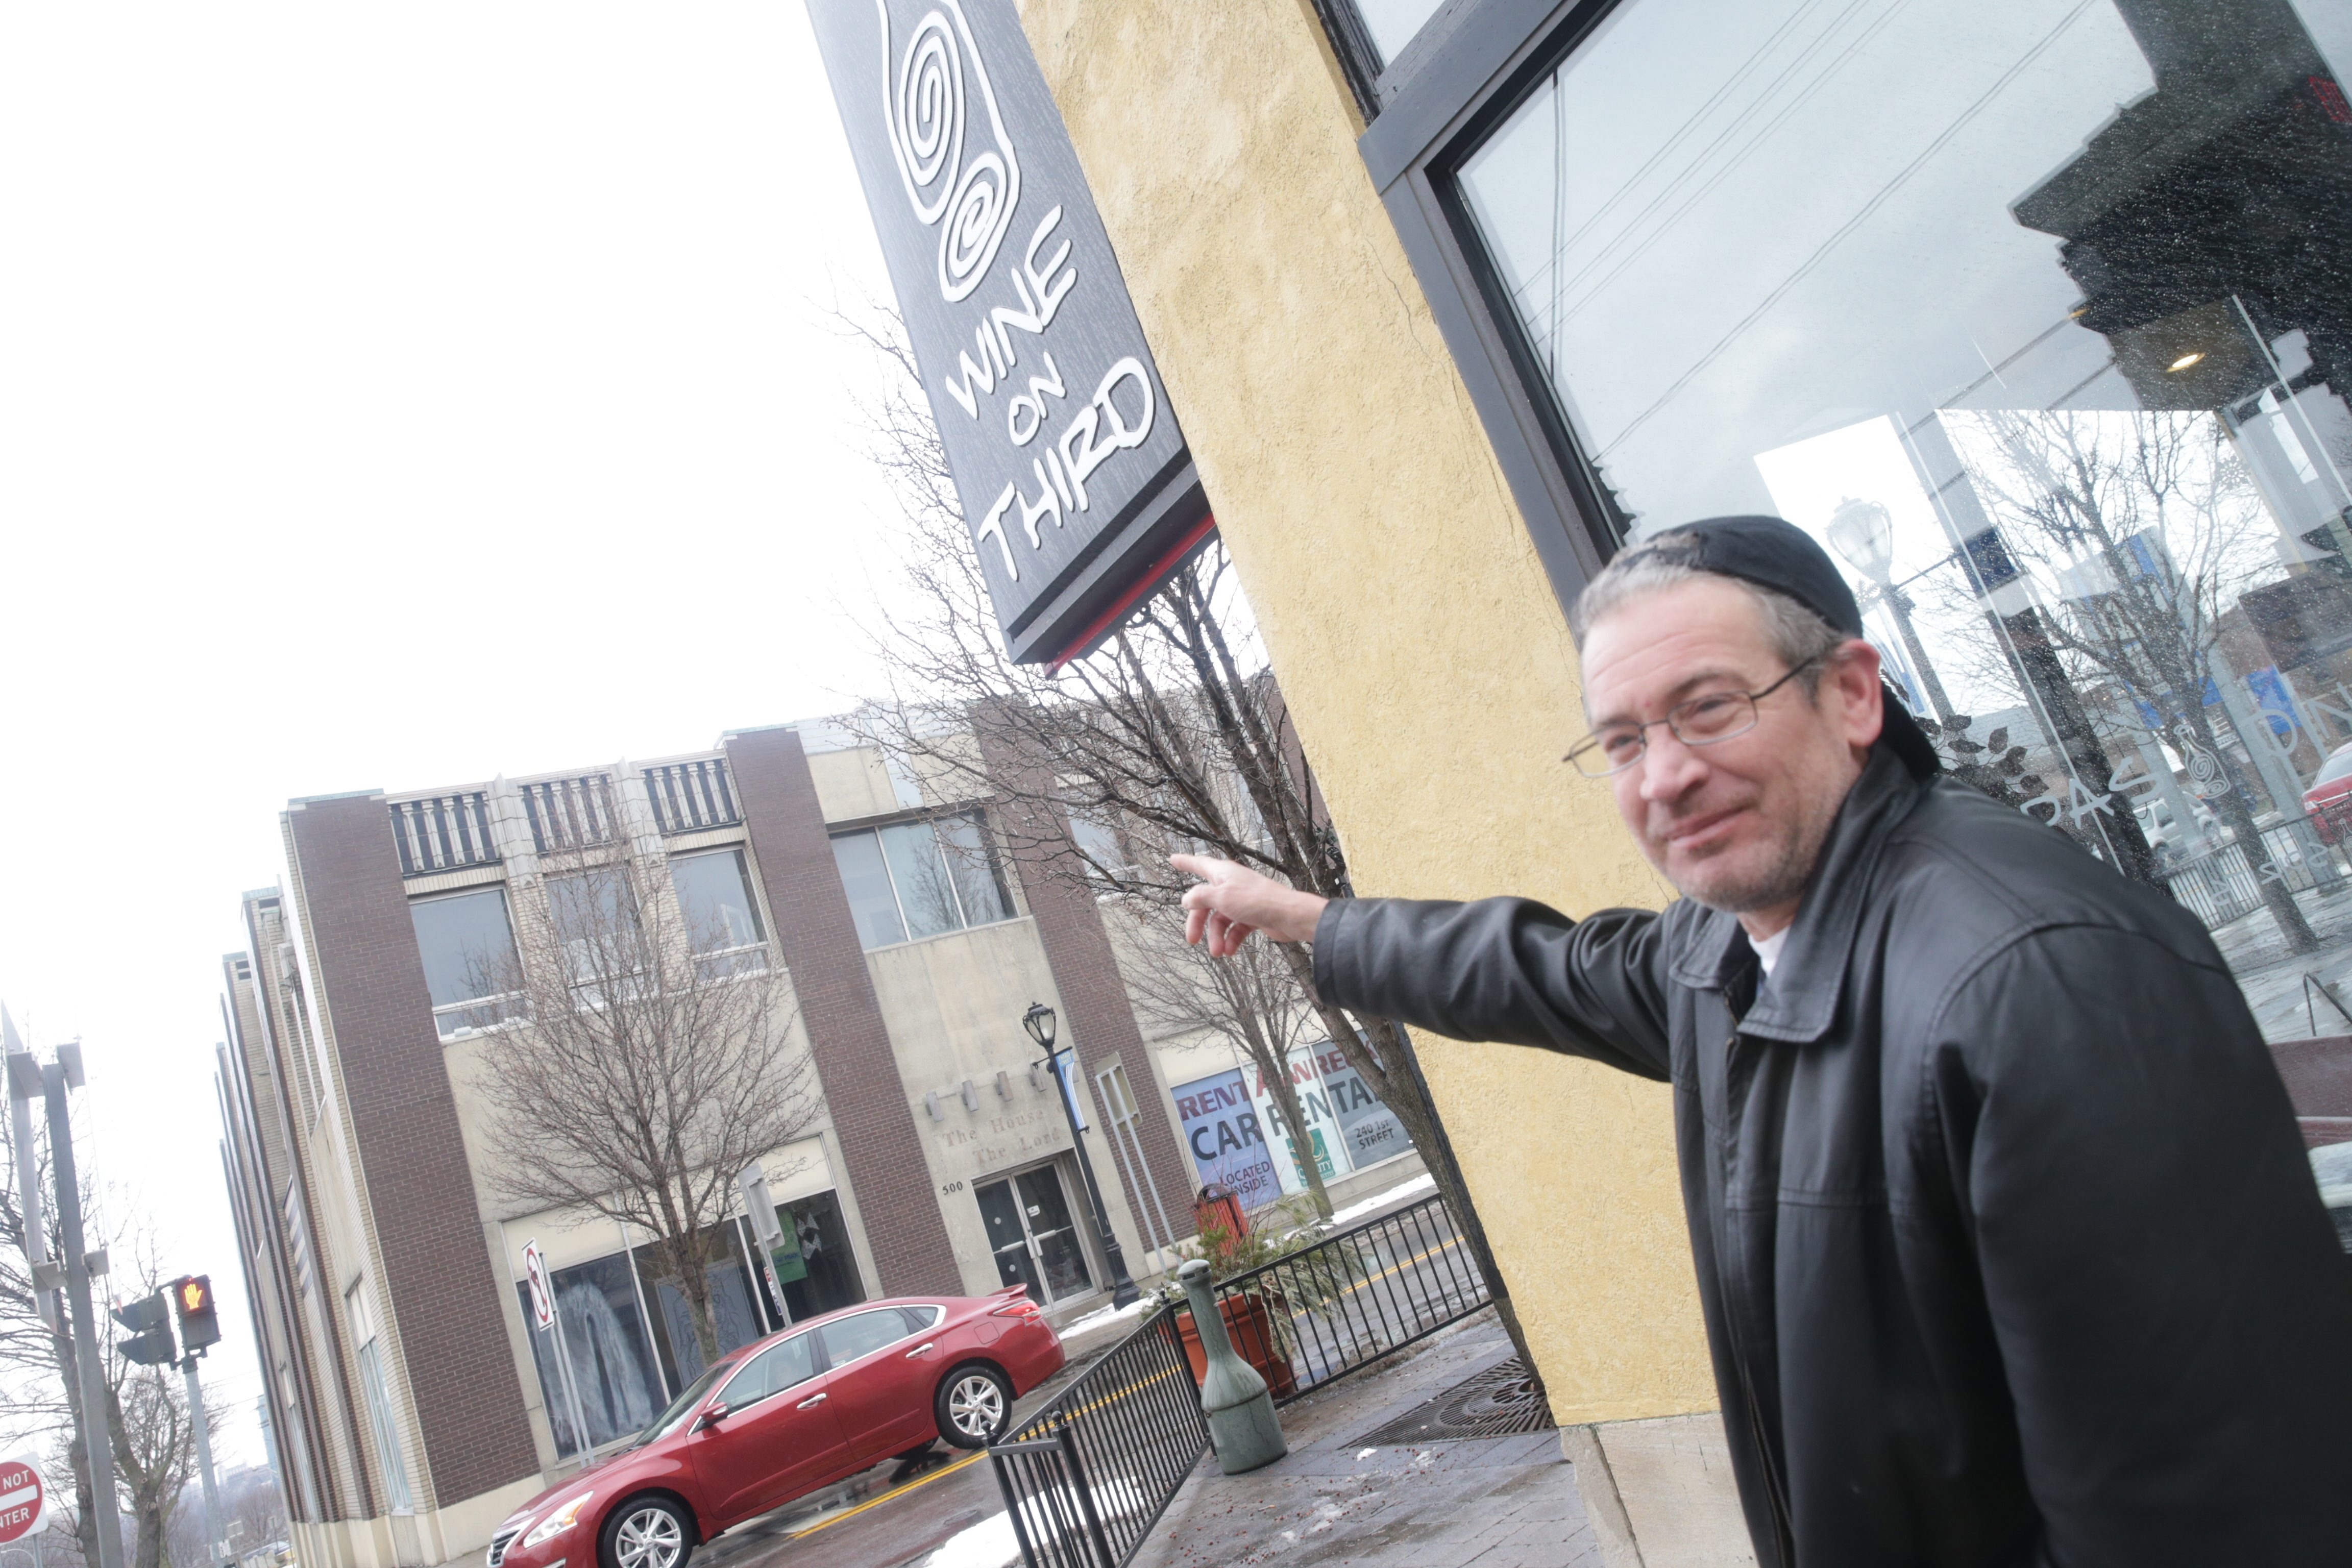 Kevin Robertson, a chef at Wine on Third, points to the vacant building at Ferry and Third streets where every day from 3 to 11 p.m. a loop of the University of Iowa fight song can be heard.